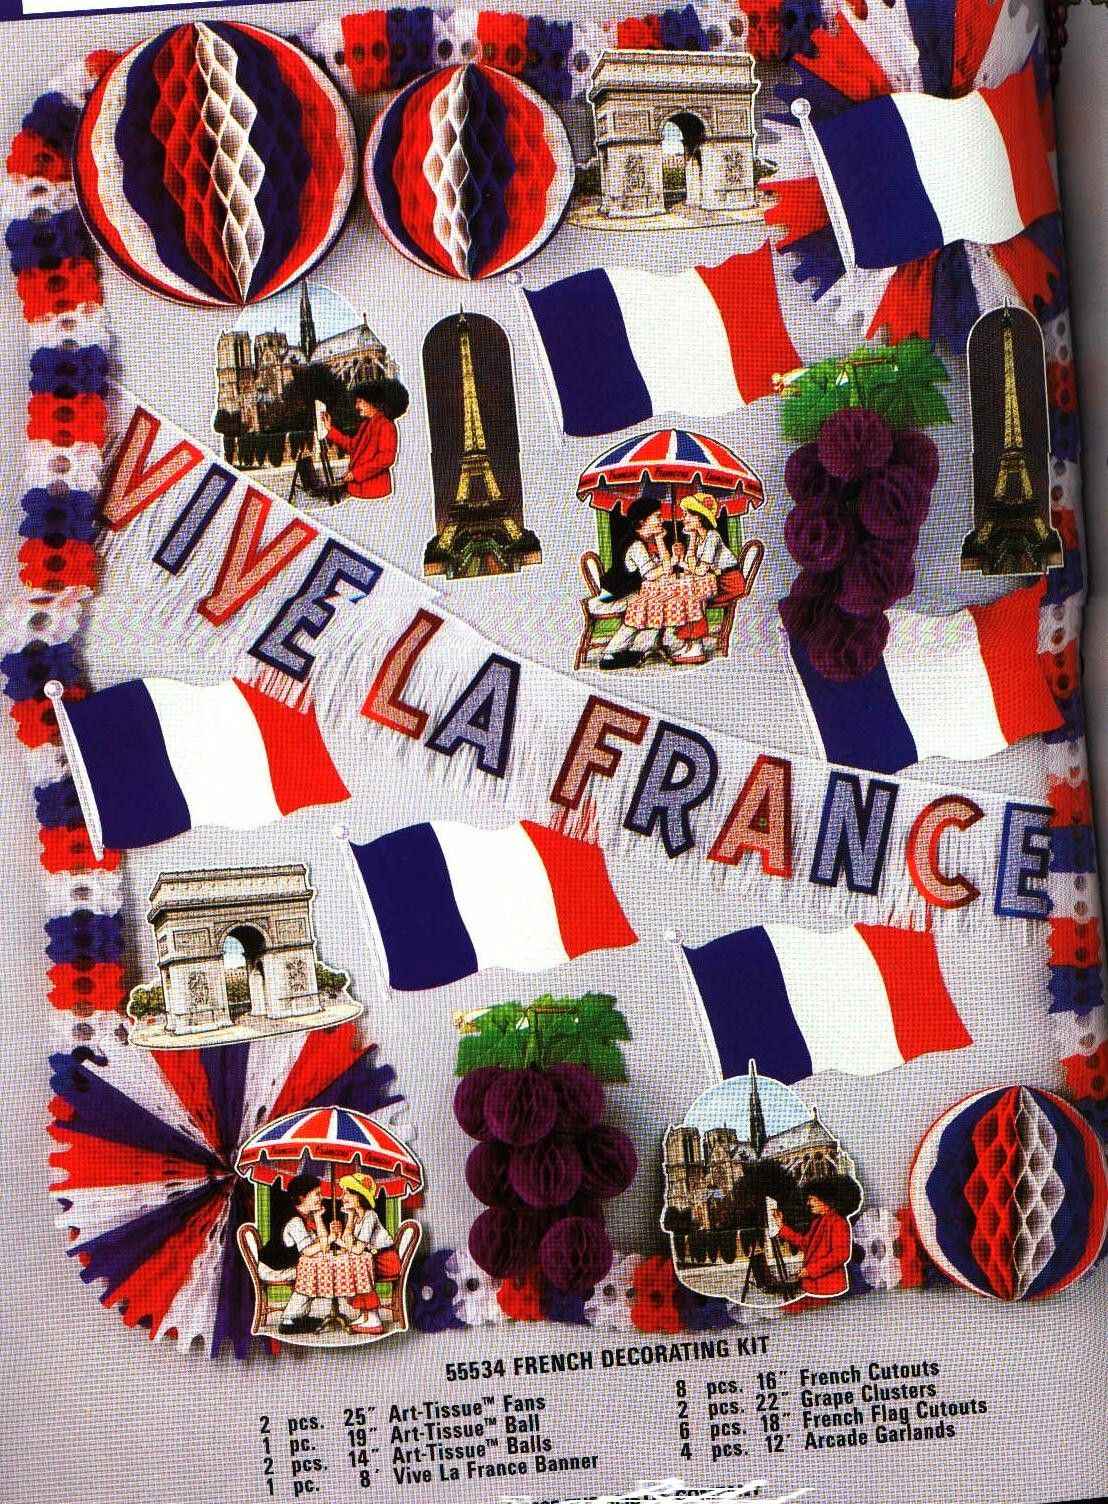 Why not pay homage to revolutionary France with red, blue and white  decorations?